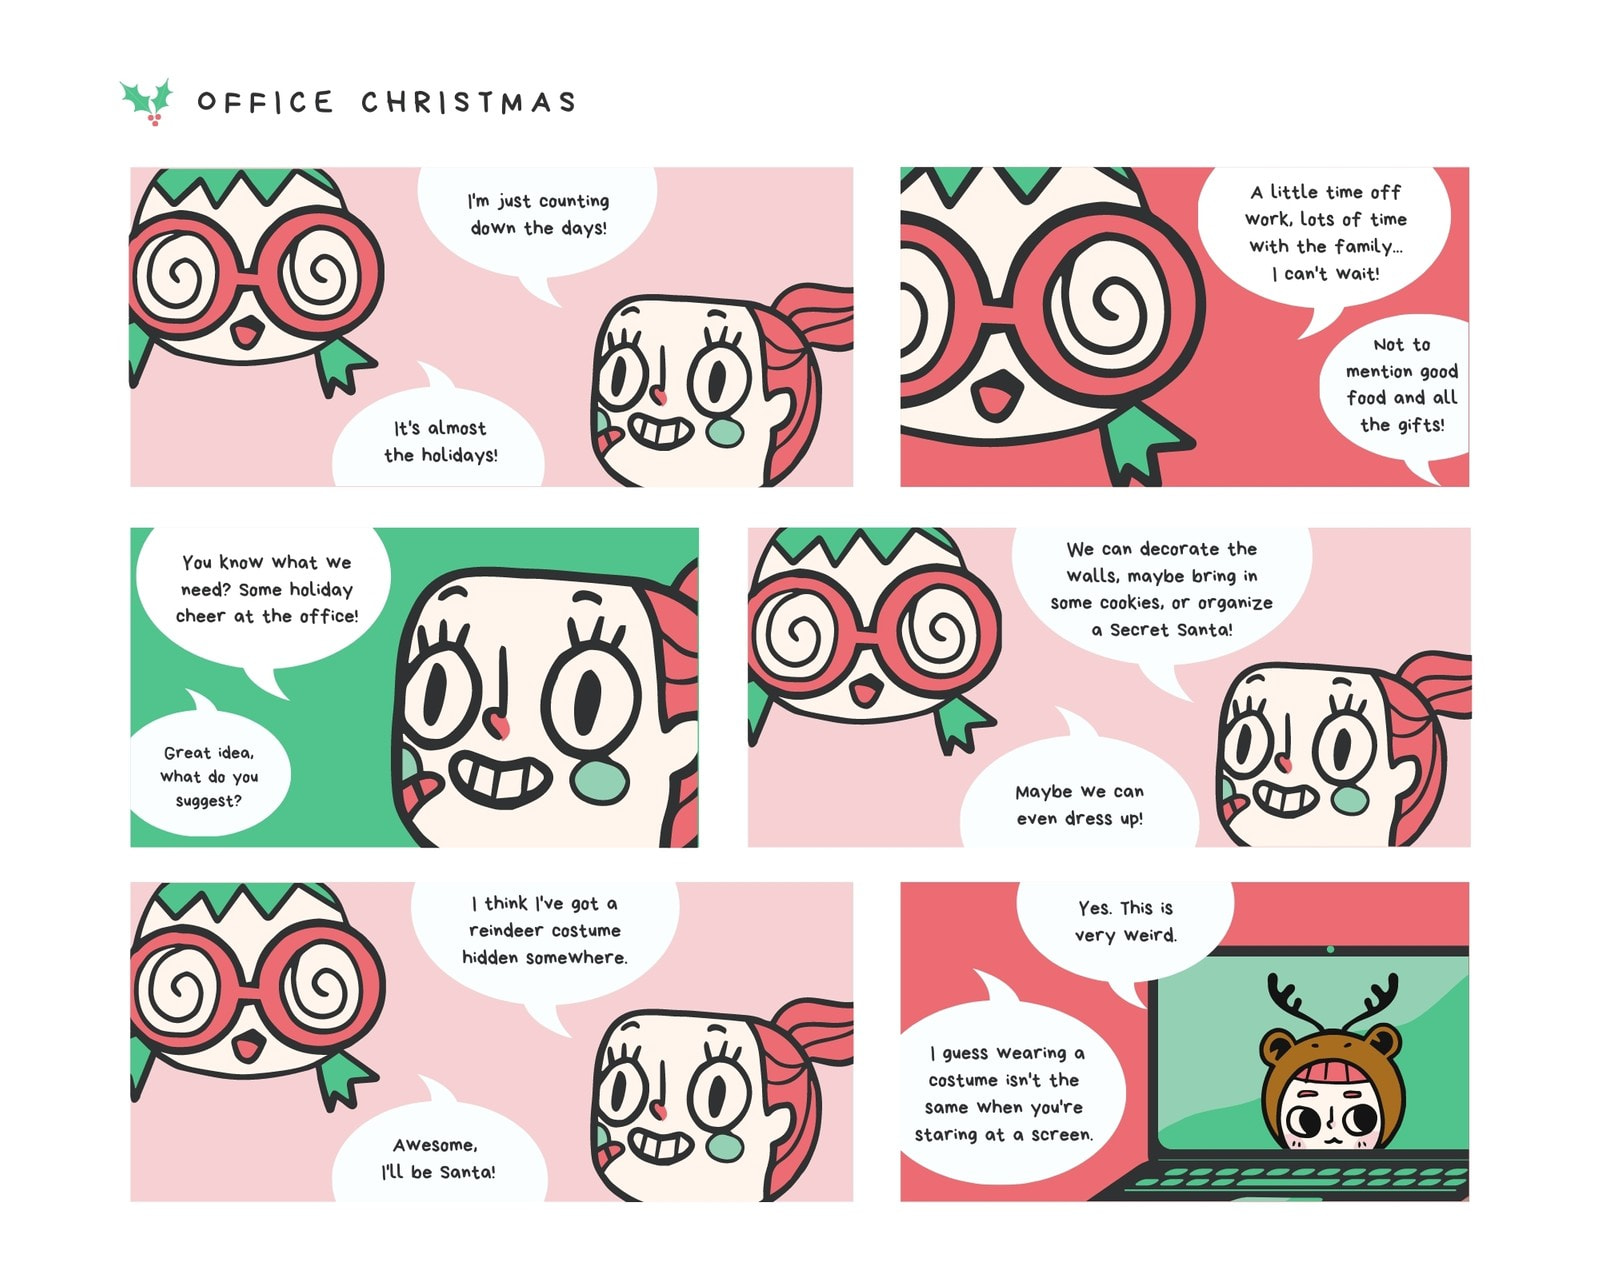 Red and Green Office Christmas 6 Panel Comic Strip